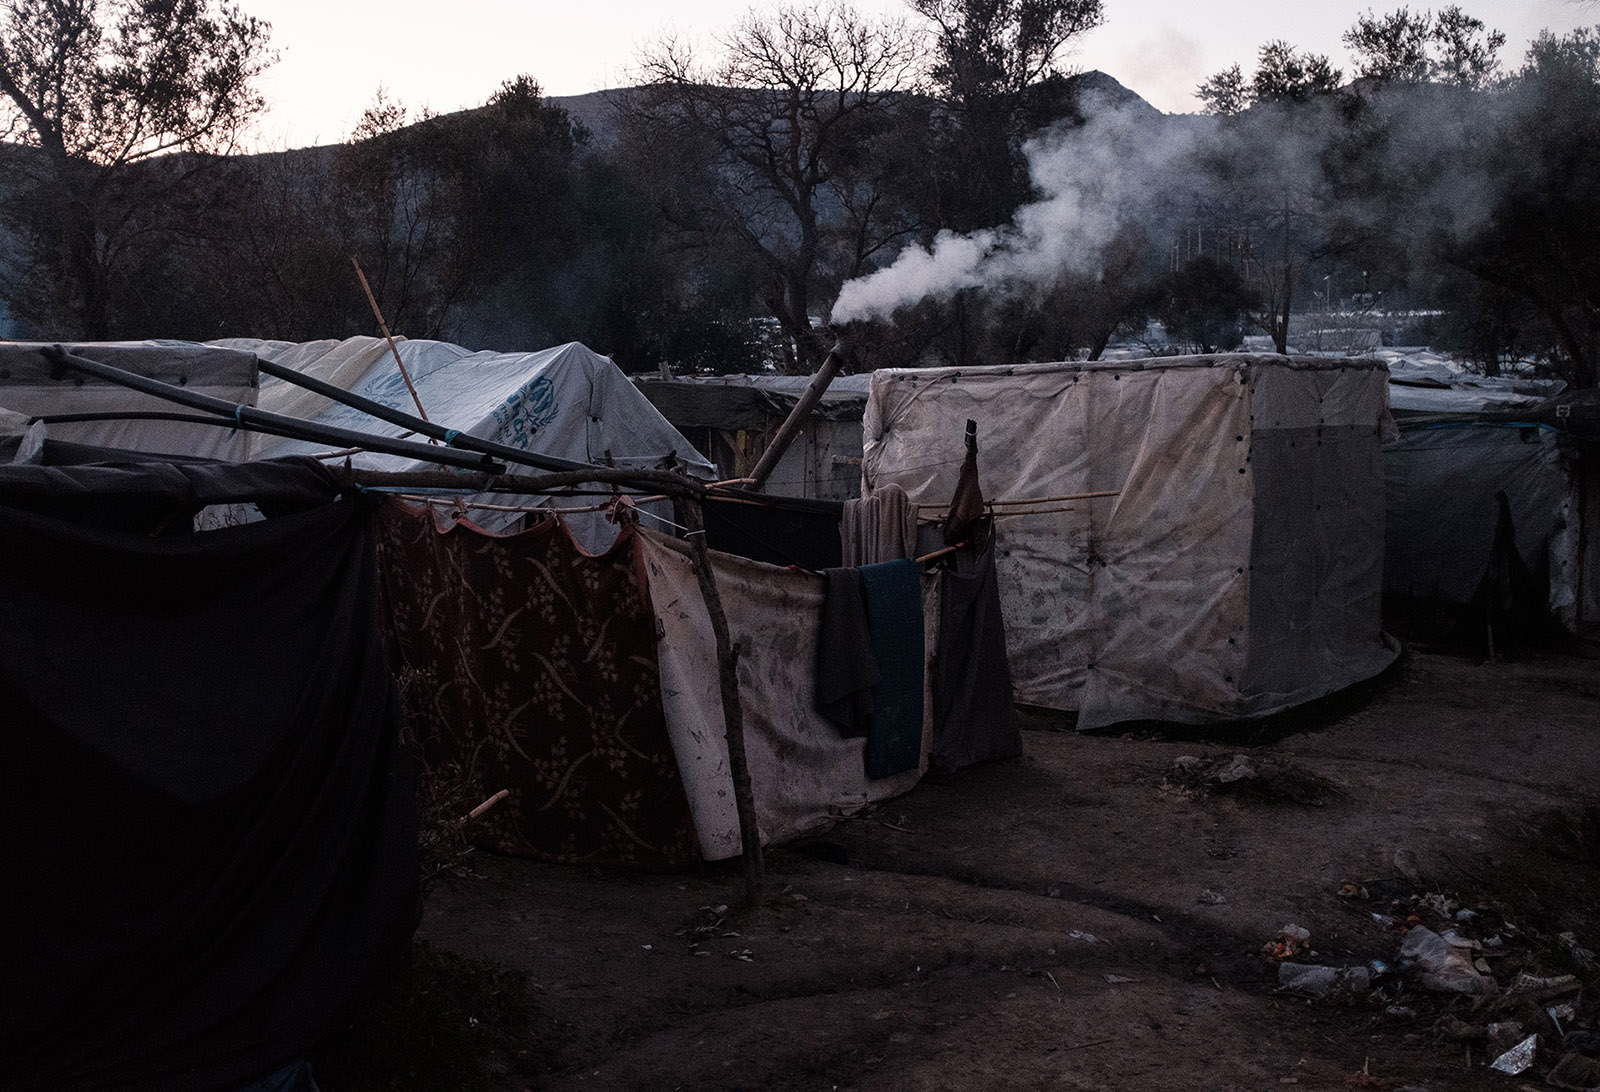 An improvised stove pipe in Vial refugee camp